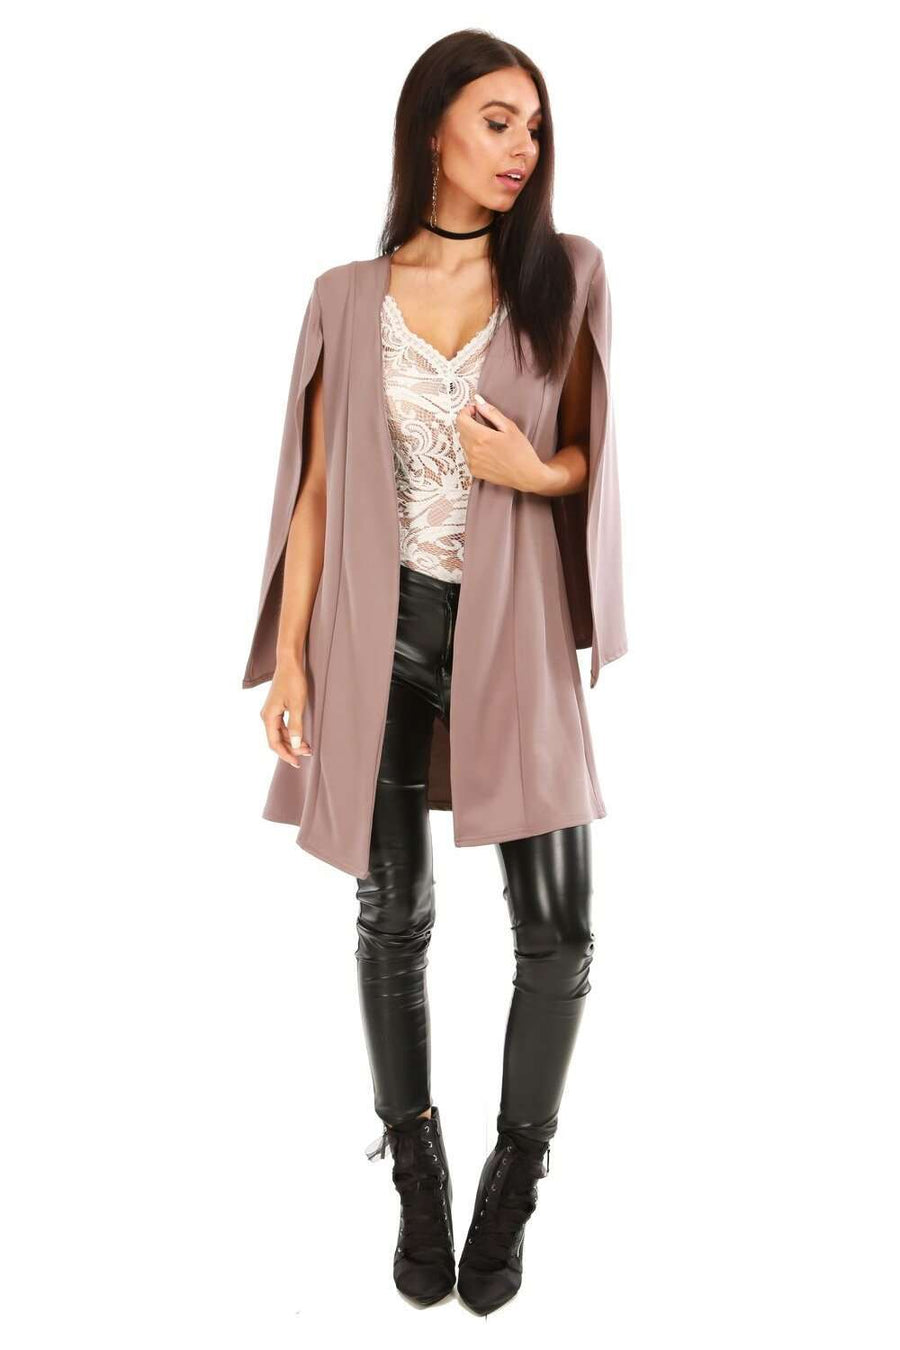 Jessie Long Line Cape Blazer Jacket - bejealous-com